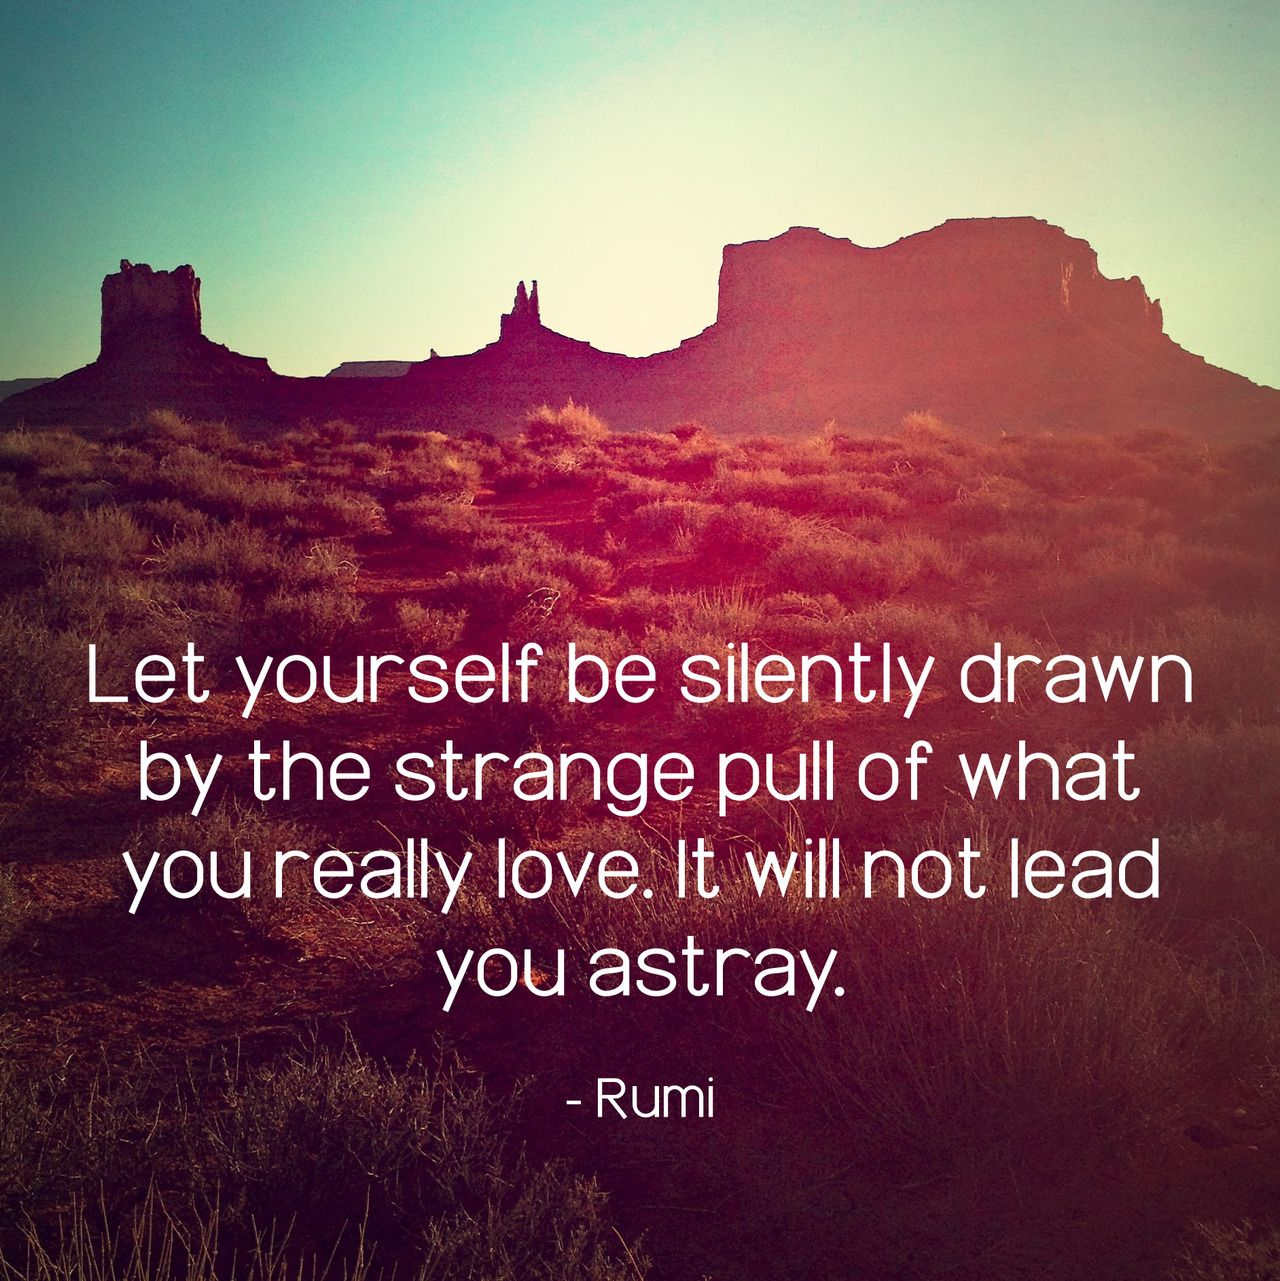 Let Yourself Be Silently Drawn By The Strange Pull Of What You Really Love.  It Will Not Lead You Astray. U2014 Rumi, U201cLet Yourself Be Silently Drawnu201d